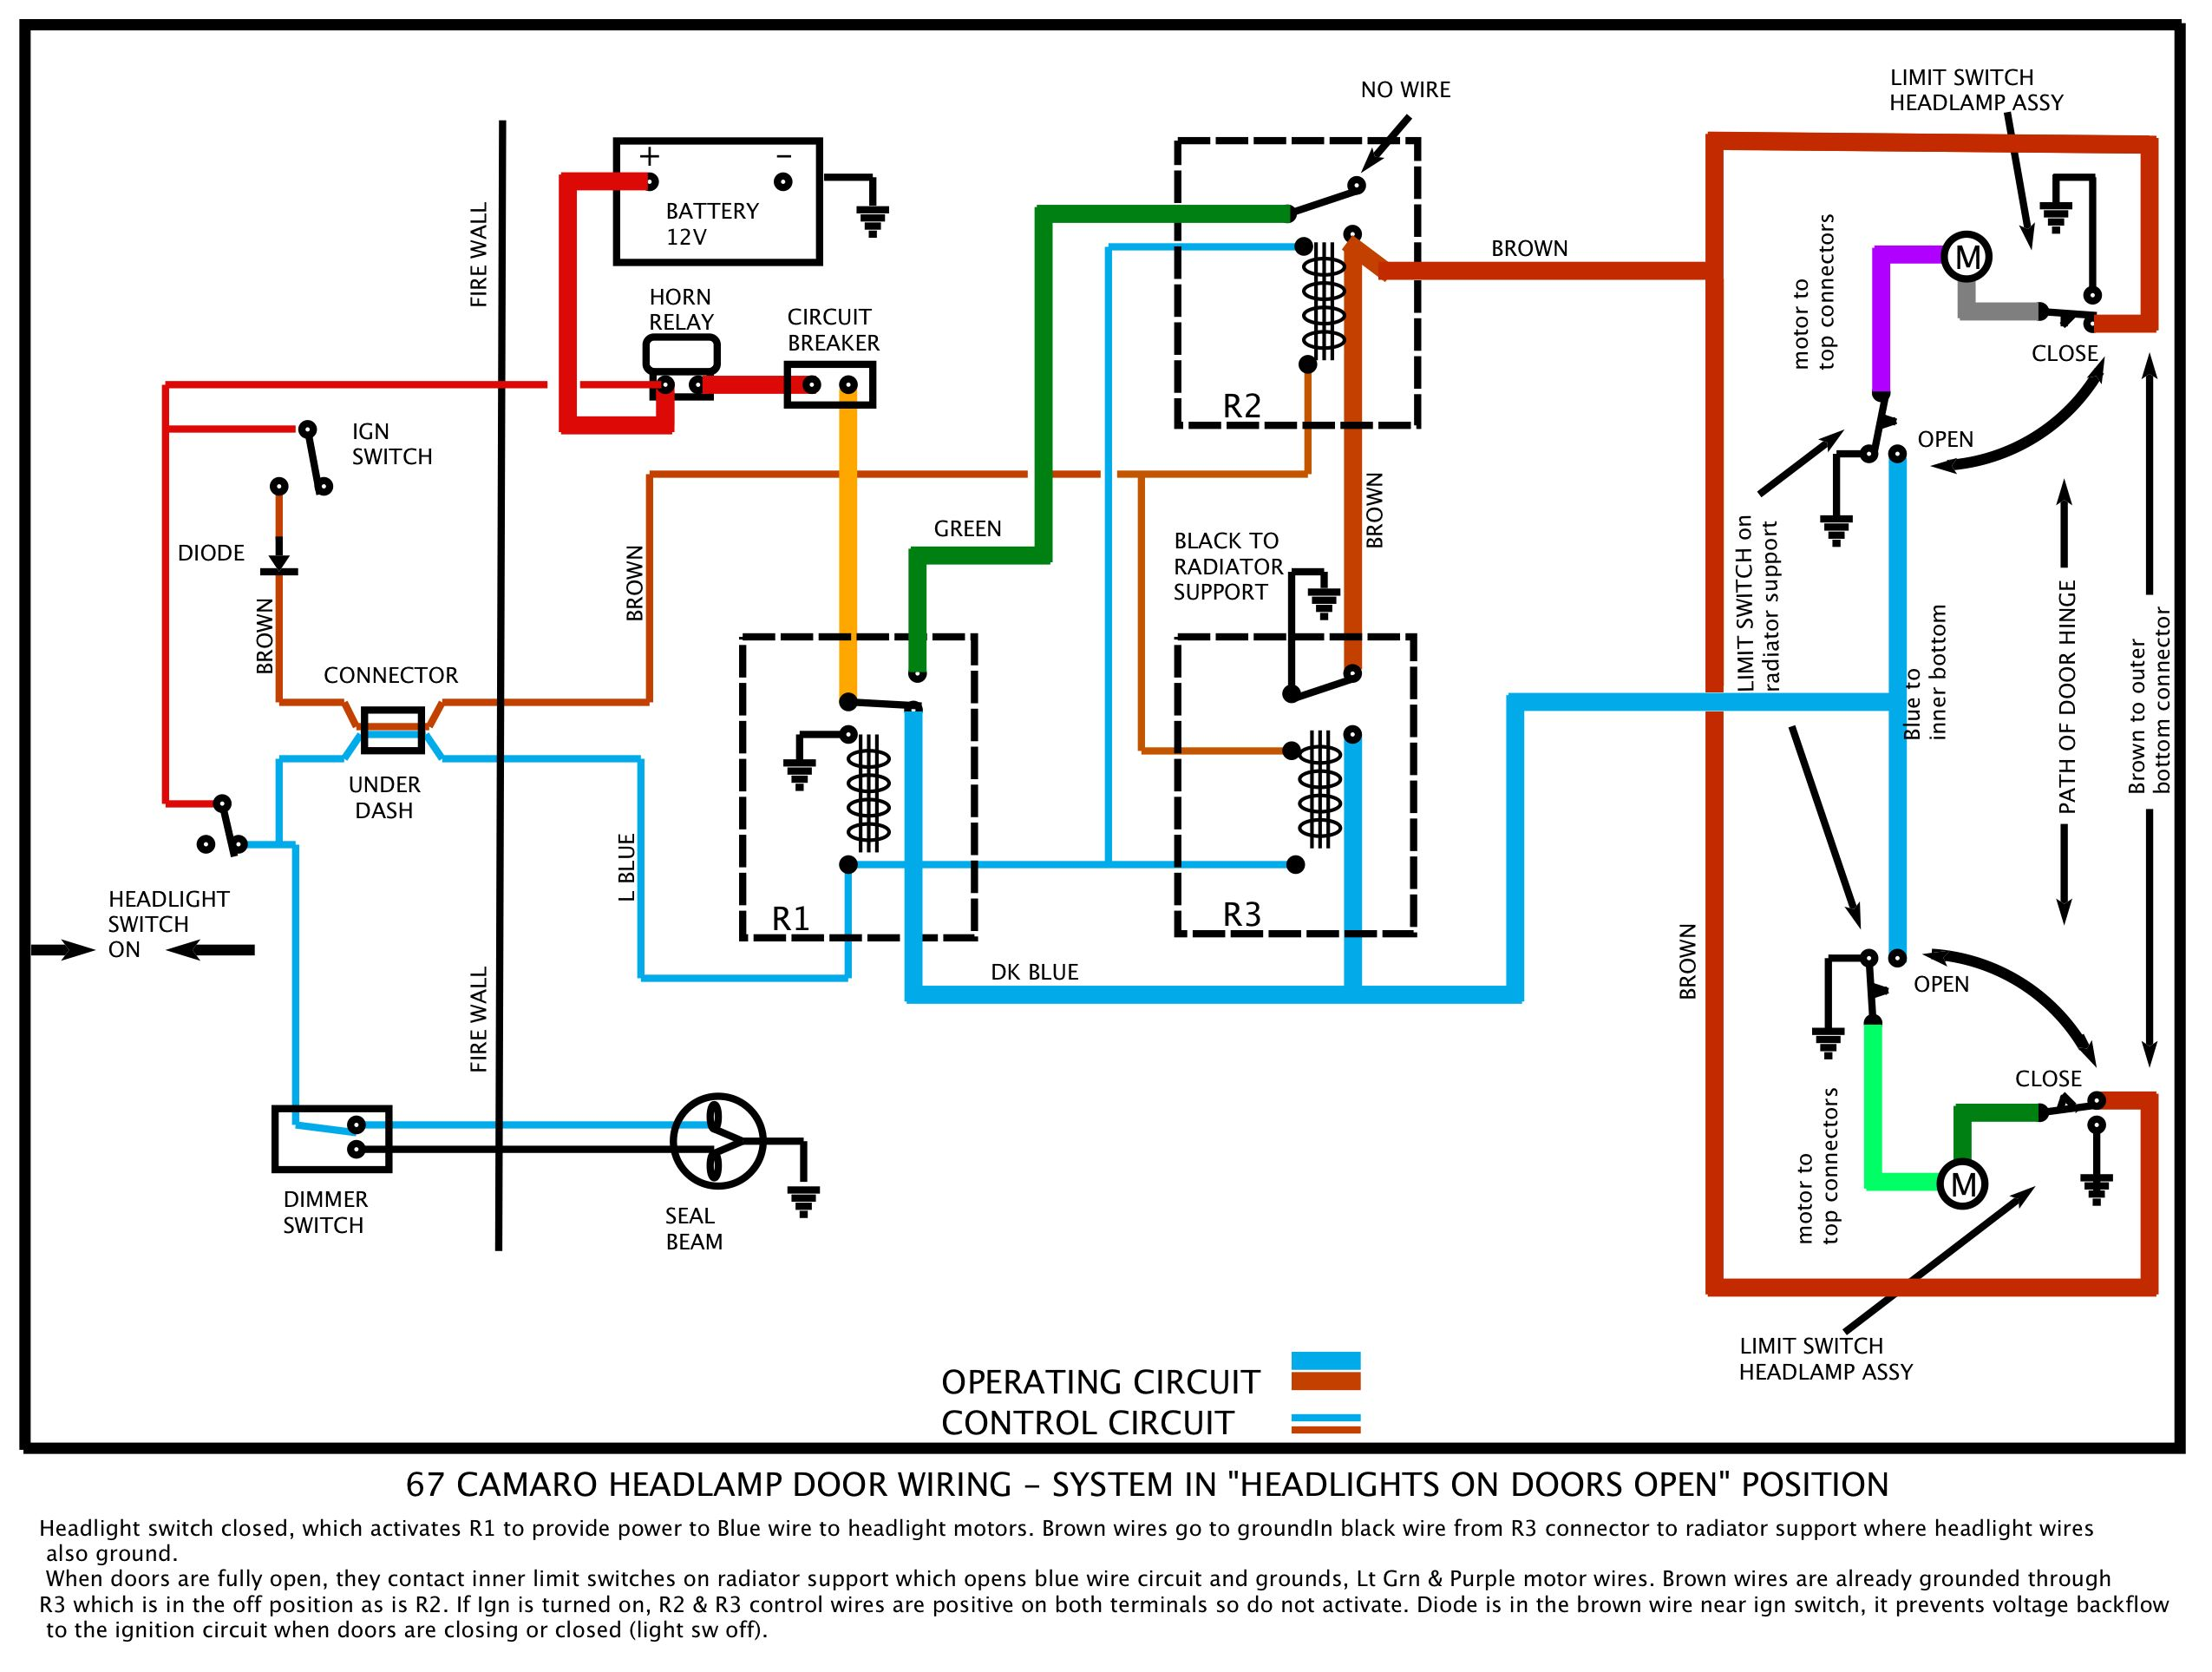 Headlights Wiring Diagram - Home Wiring Diagrams on 3 wire trailer light diagram, freightliner tail light diagram, 4 wire tail light diagram, o2 sensor wiring diagram, led tail light diagram, universal tail light combo diagram, 5 wire tail light diagram, ford tail light wiring diagram, grote tail light wire diagram, chevy tail light wiring diagram, turn signal wiring diagram, relay wiring diagram,